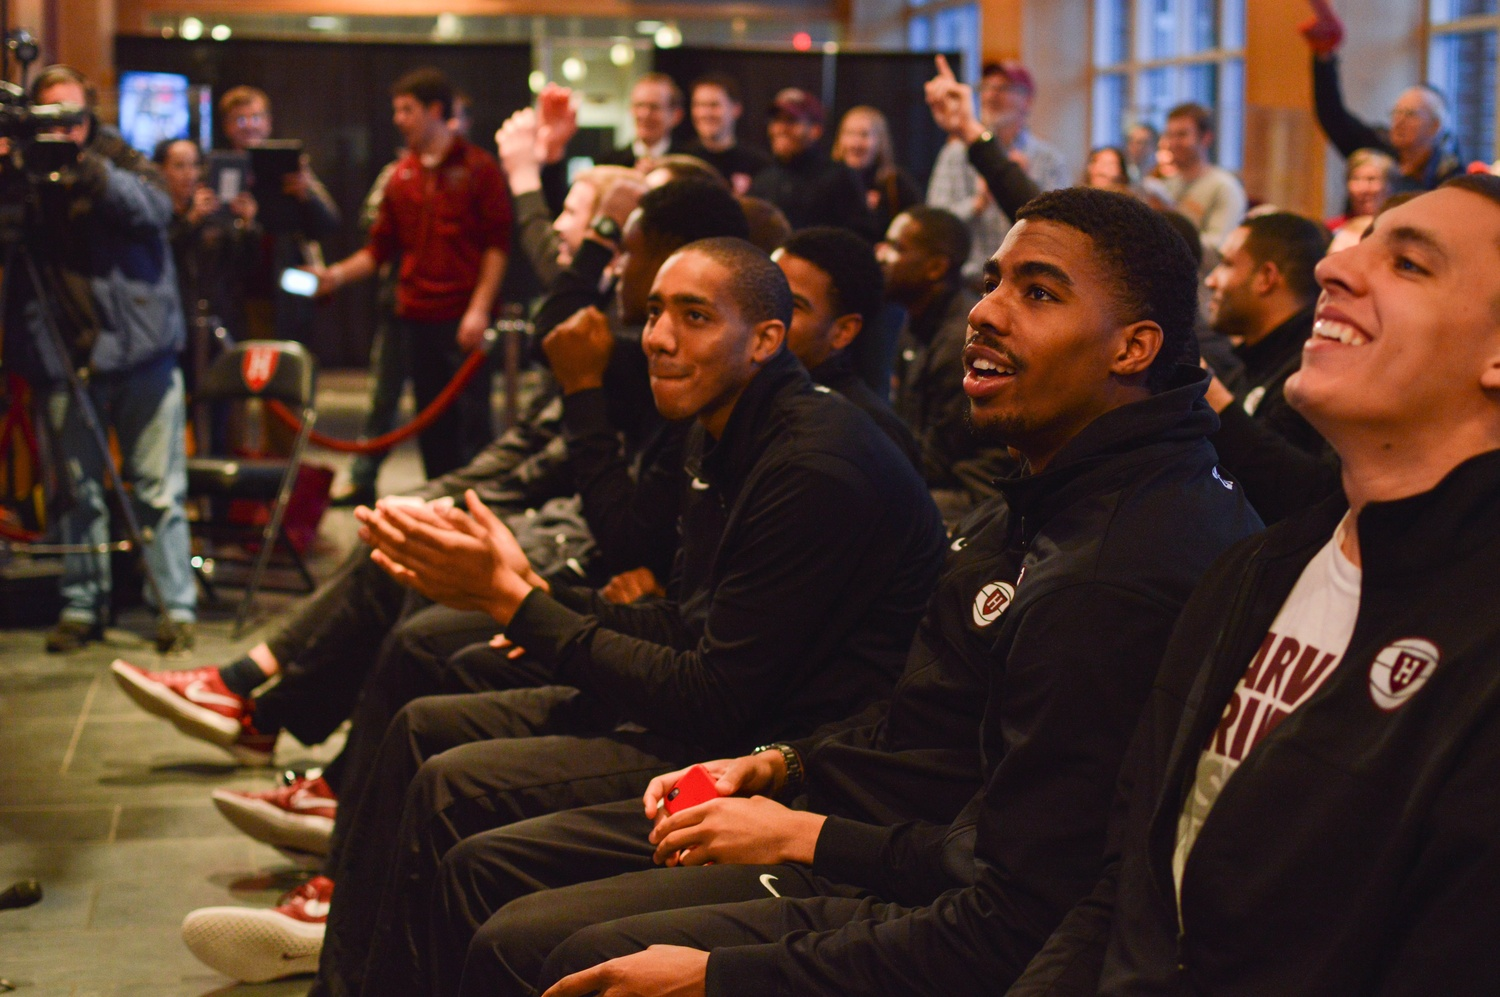 In a crowded Murr Center, players and supporters alike react to a television live-stream of themselves with applause and raised hands. Harvard will face off against North Carolina on Thursday.